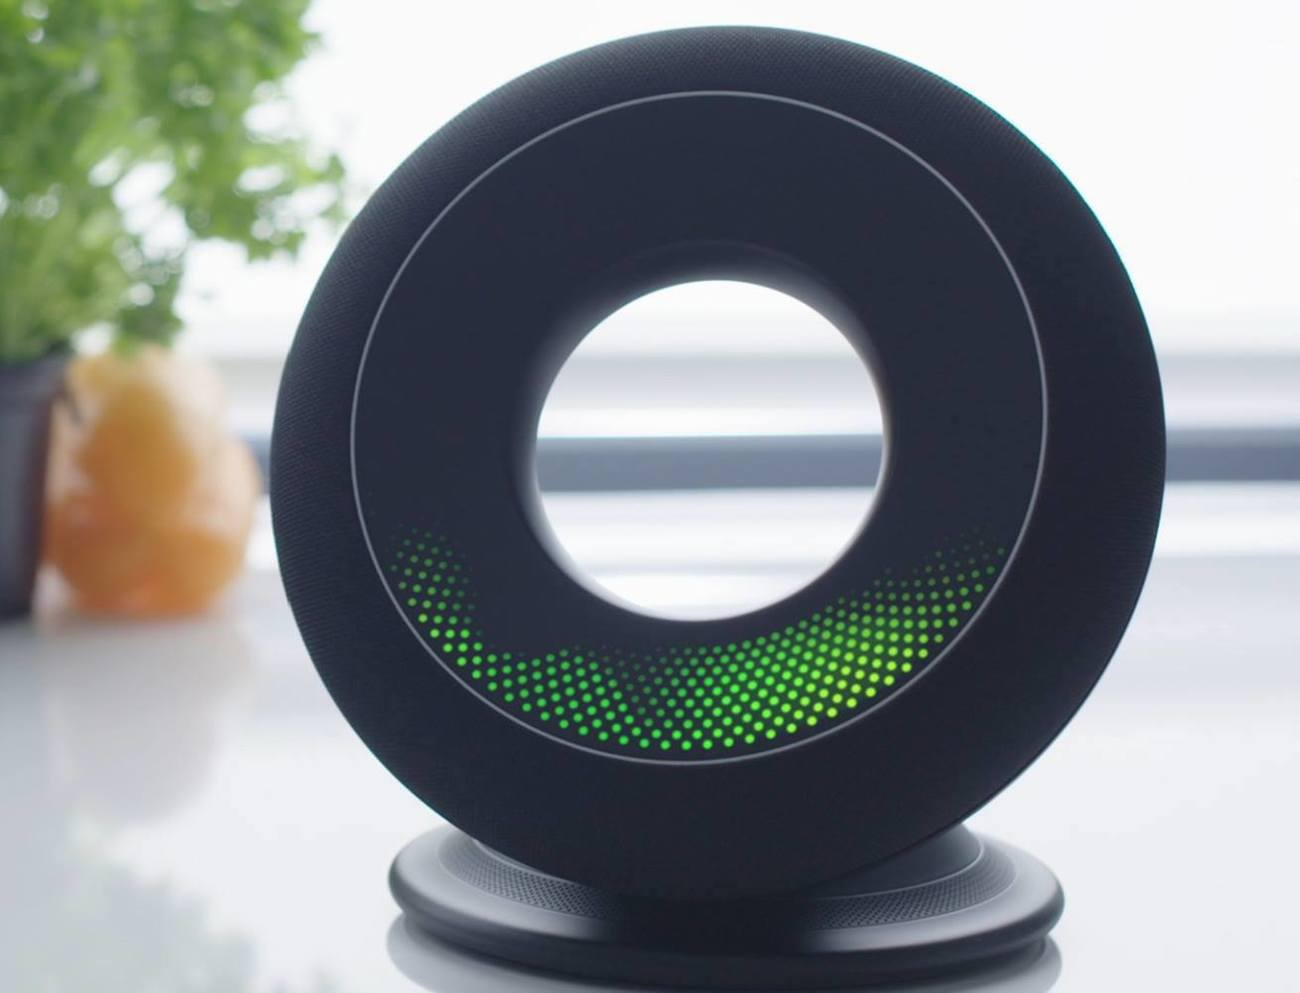 Olly Smart Robot Assistant